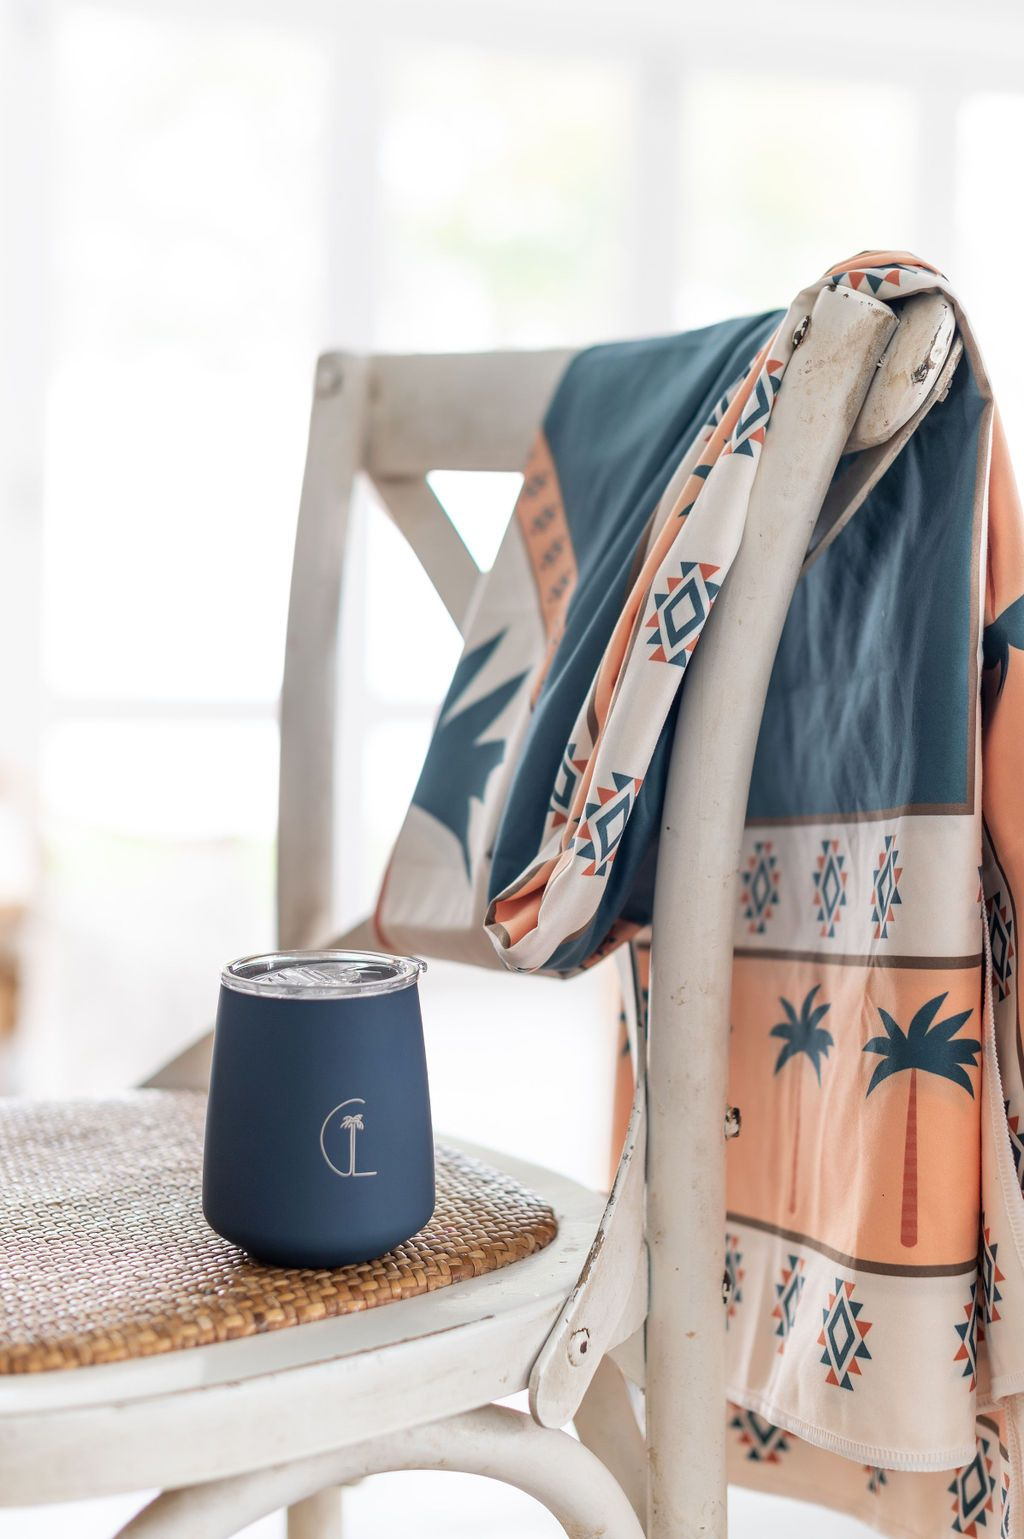 caye life cup with throw